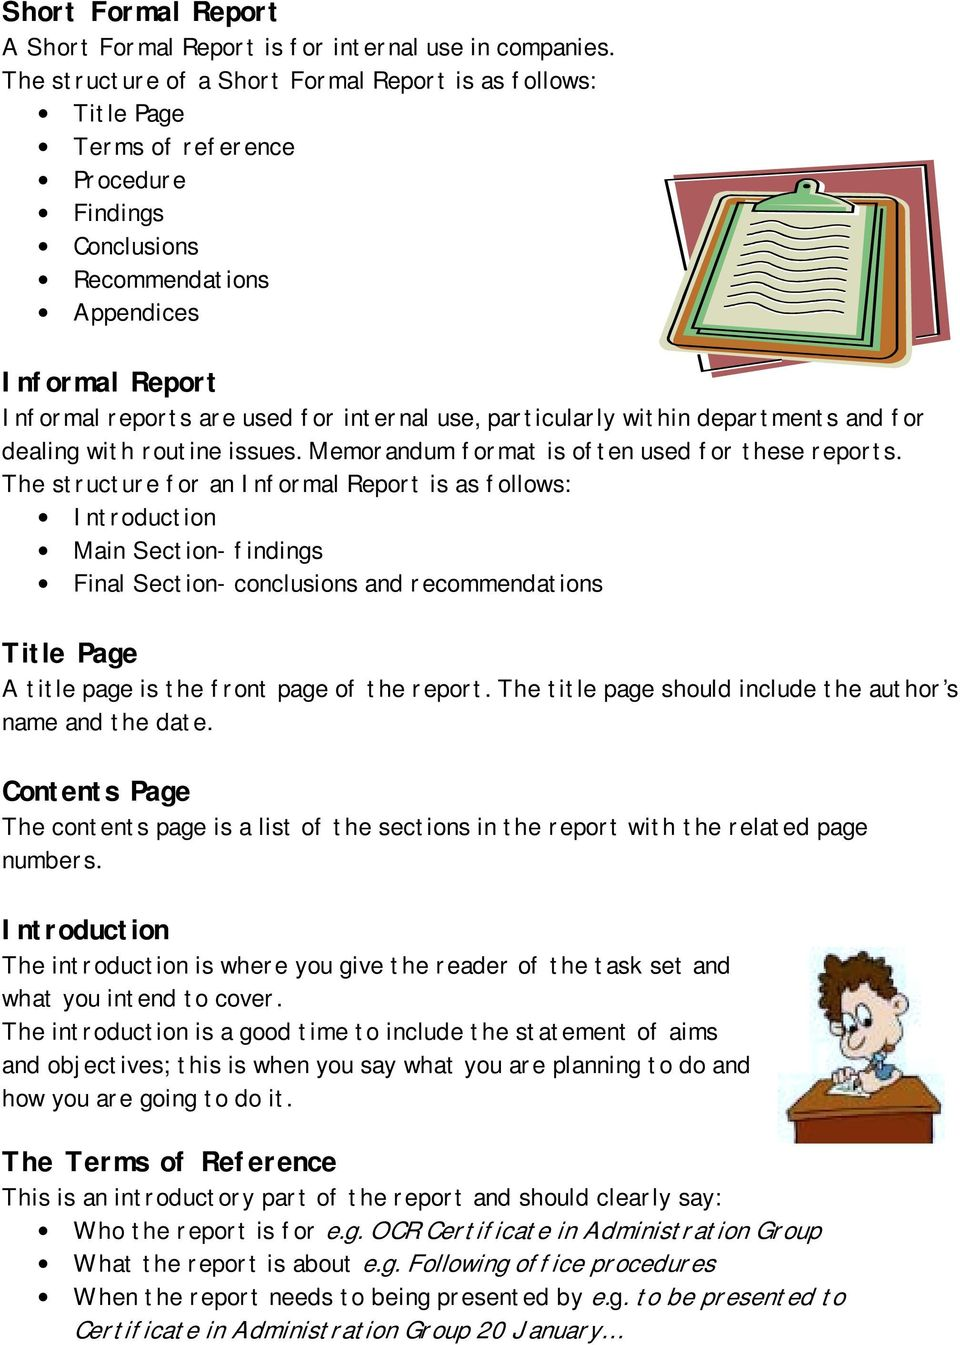 A Guide to Business Report Writing - PDF